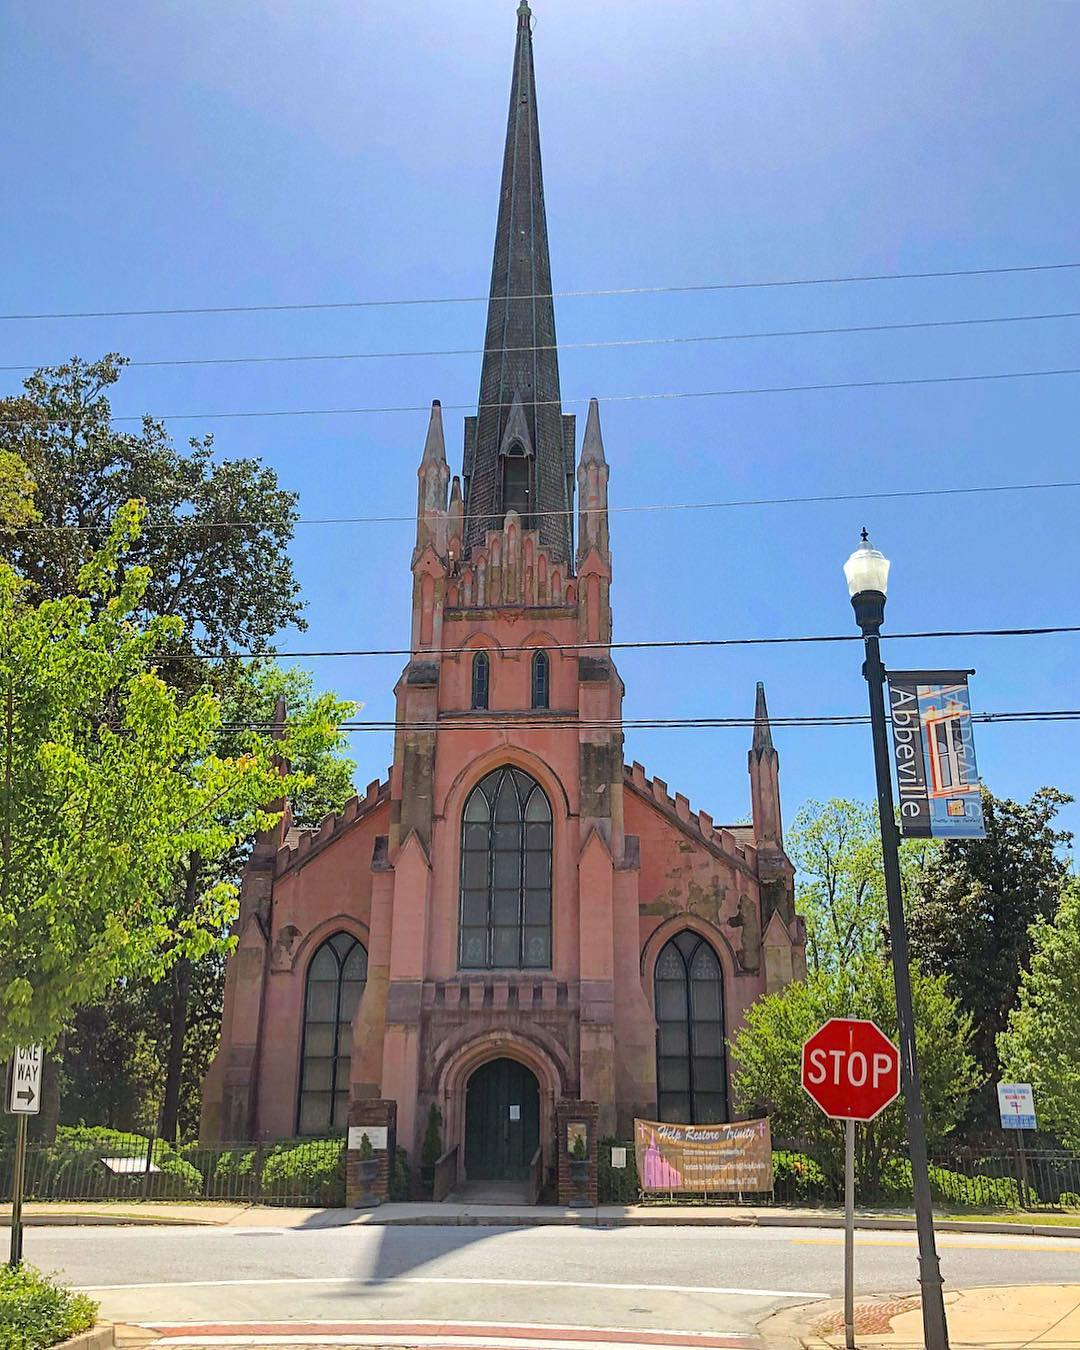 Trinity Episcopal Church in Abbeville was founded in 1842. Columbia architect George Walker designed the building in the French Gothic style. Construction completed in 1860. Preservation South Carolina is currently working to restore this church